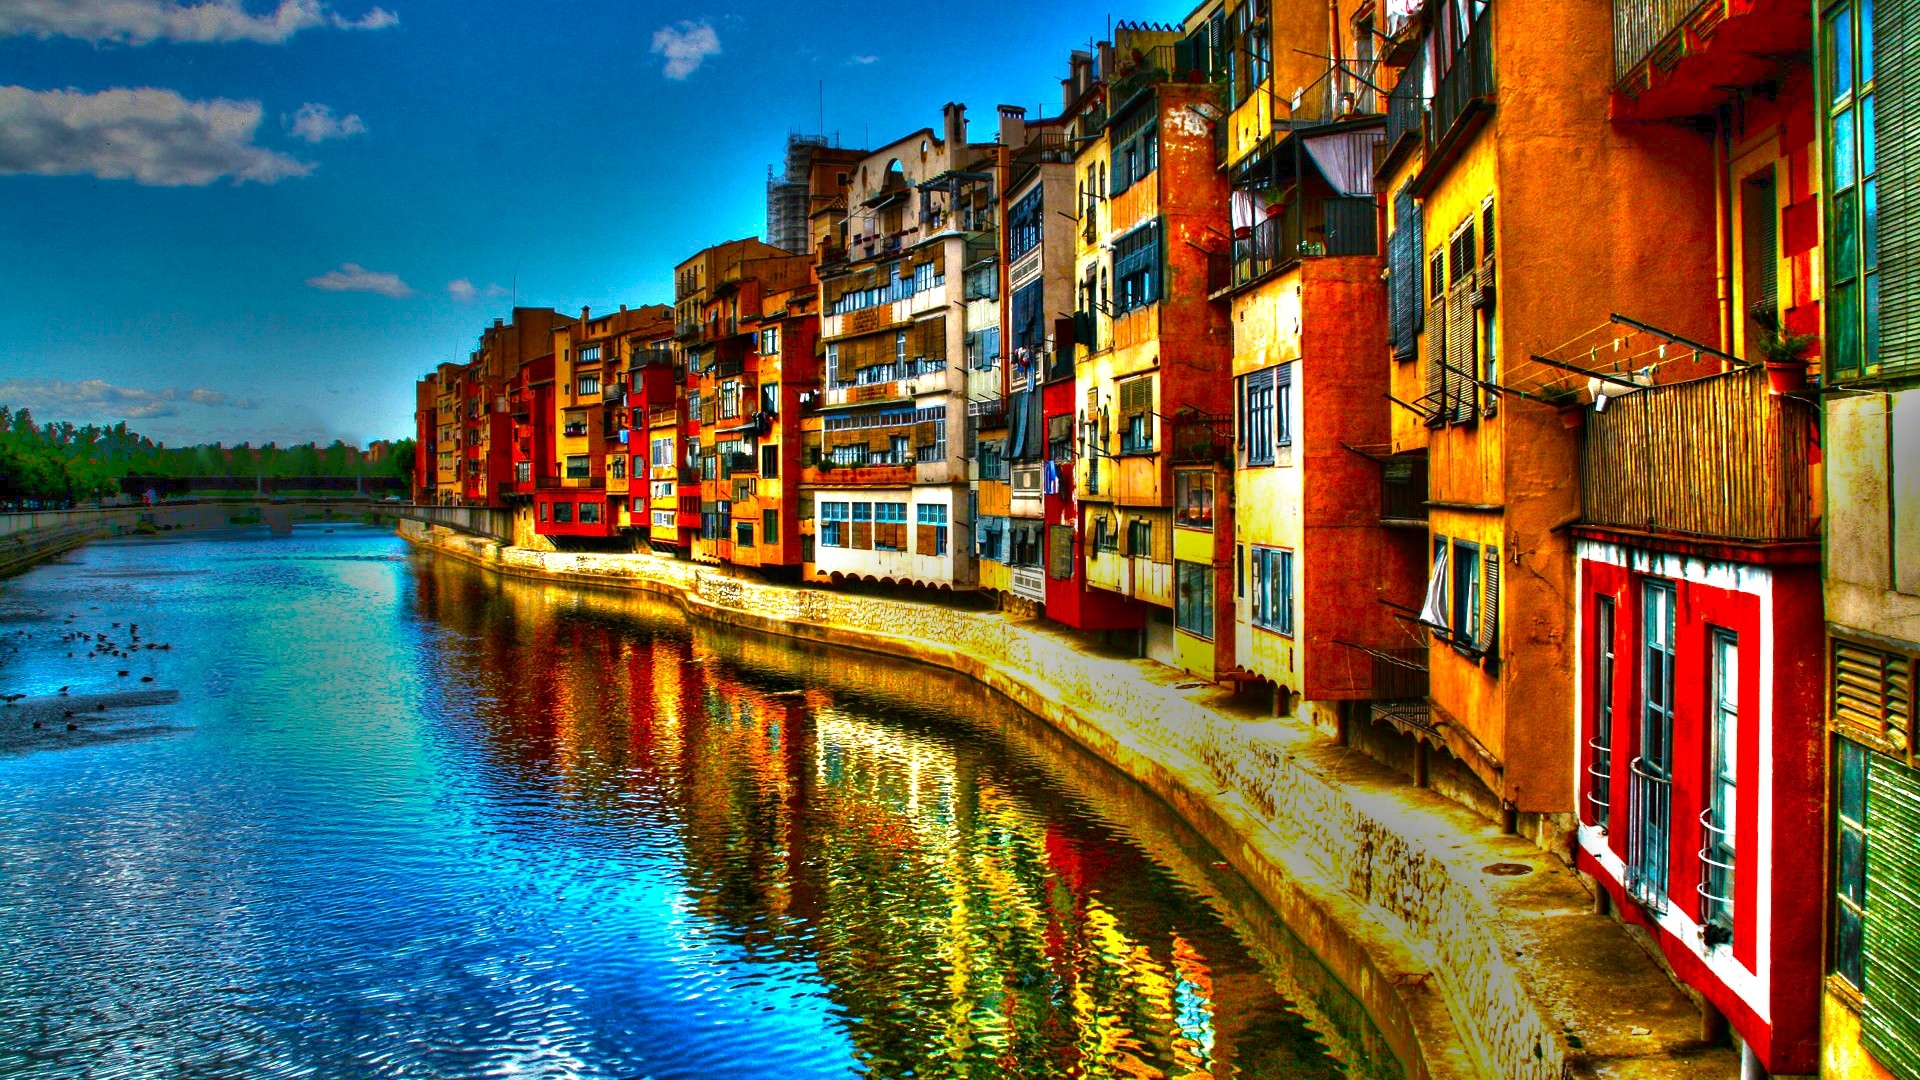 Italy Wallpaper Of 9 Italy River Building Hdr Hd Wallpaper 1326 Italy Hd